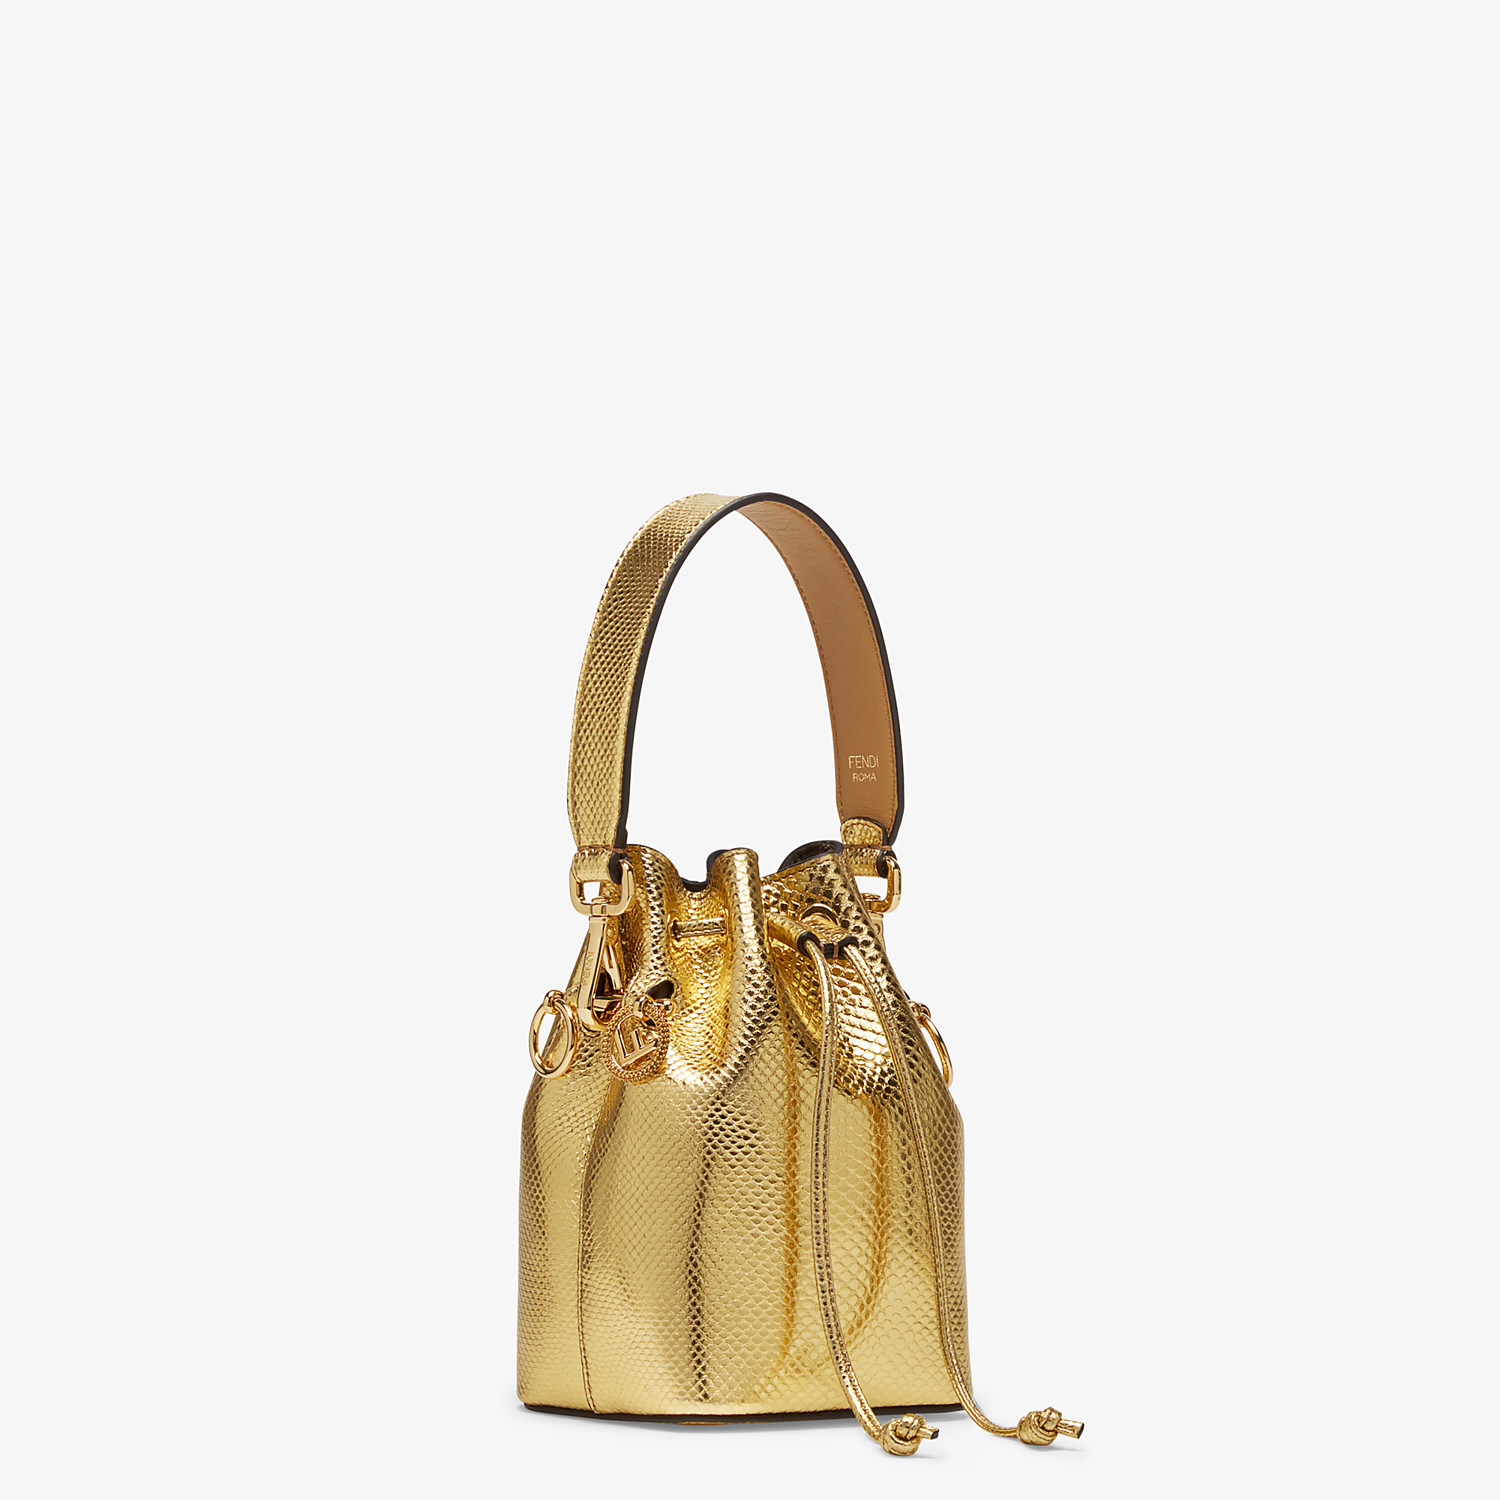 FENDI MON TRESOR - Gold colored karung mini-bag - view 2 detail